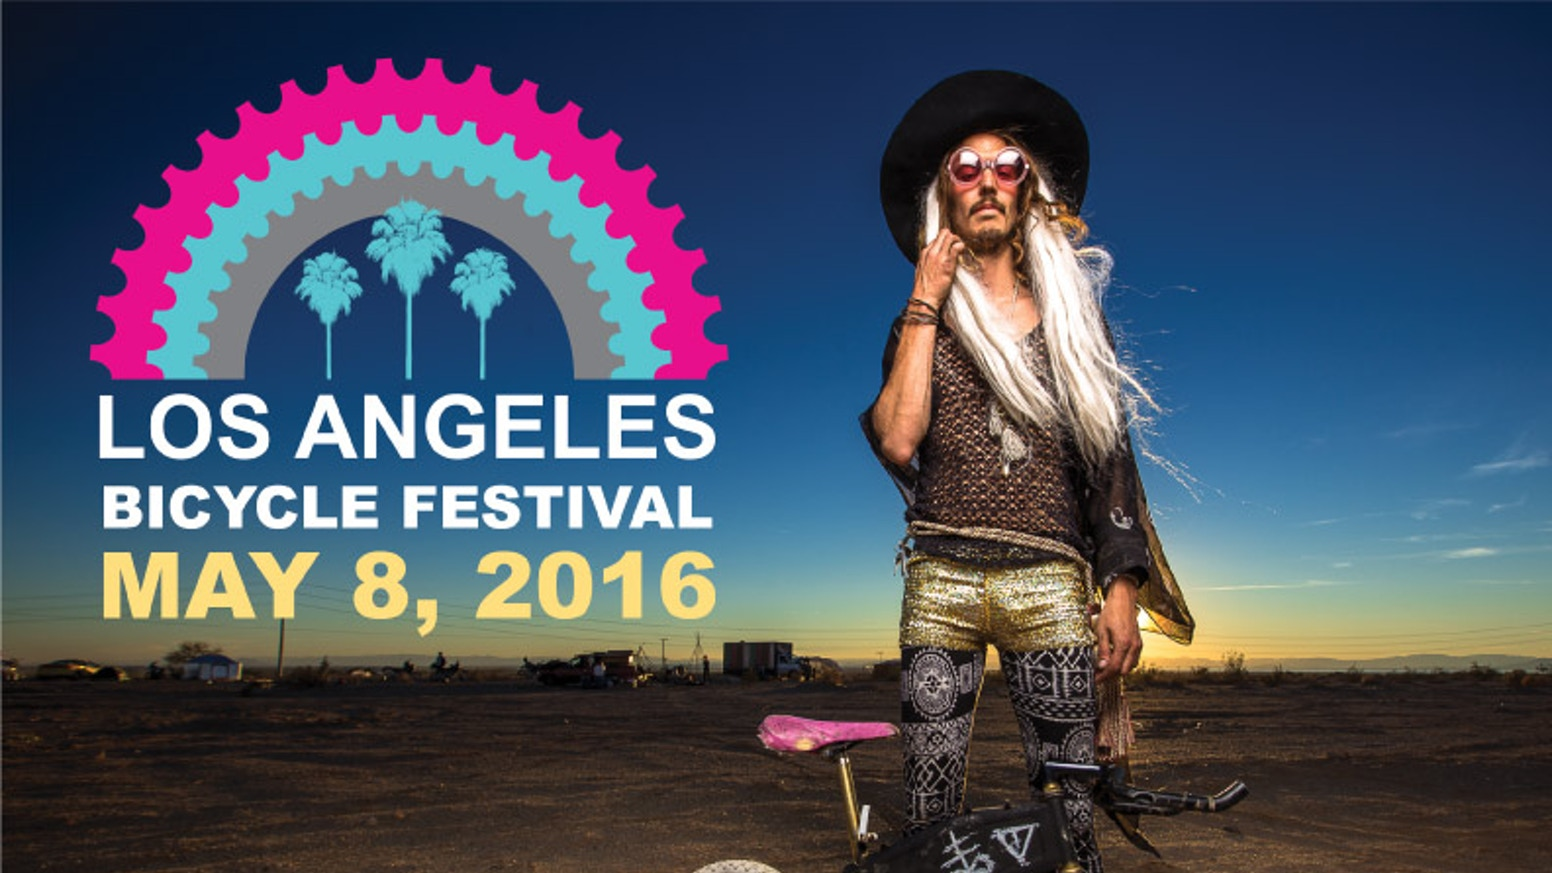 Los Angeles Bicycle Festival By Bicycle Culture Institute